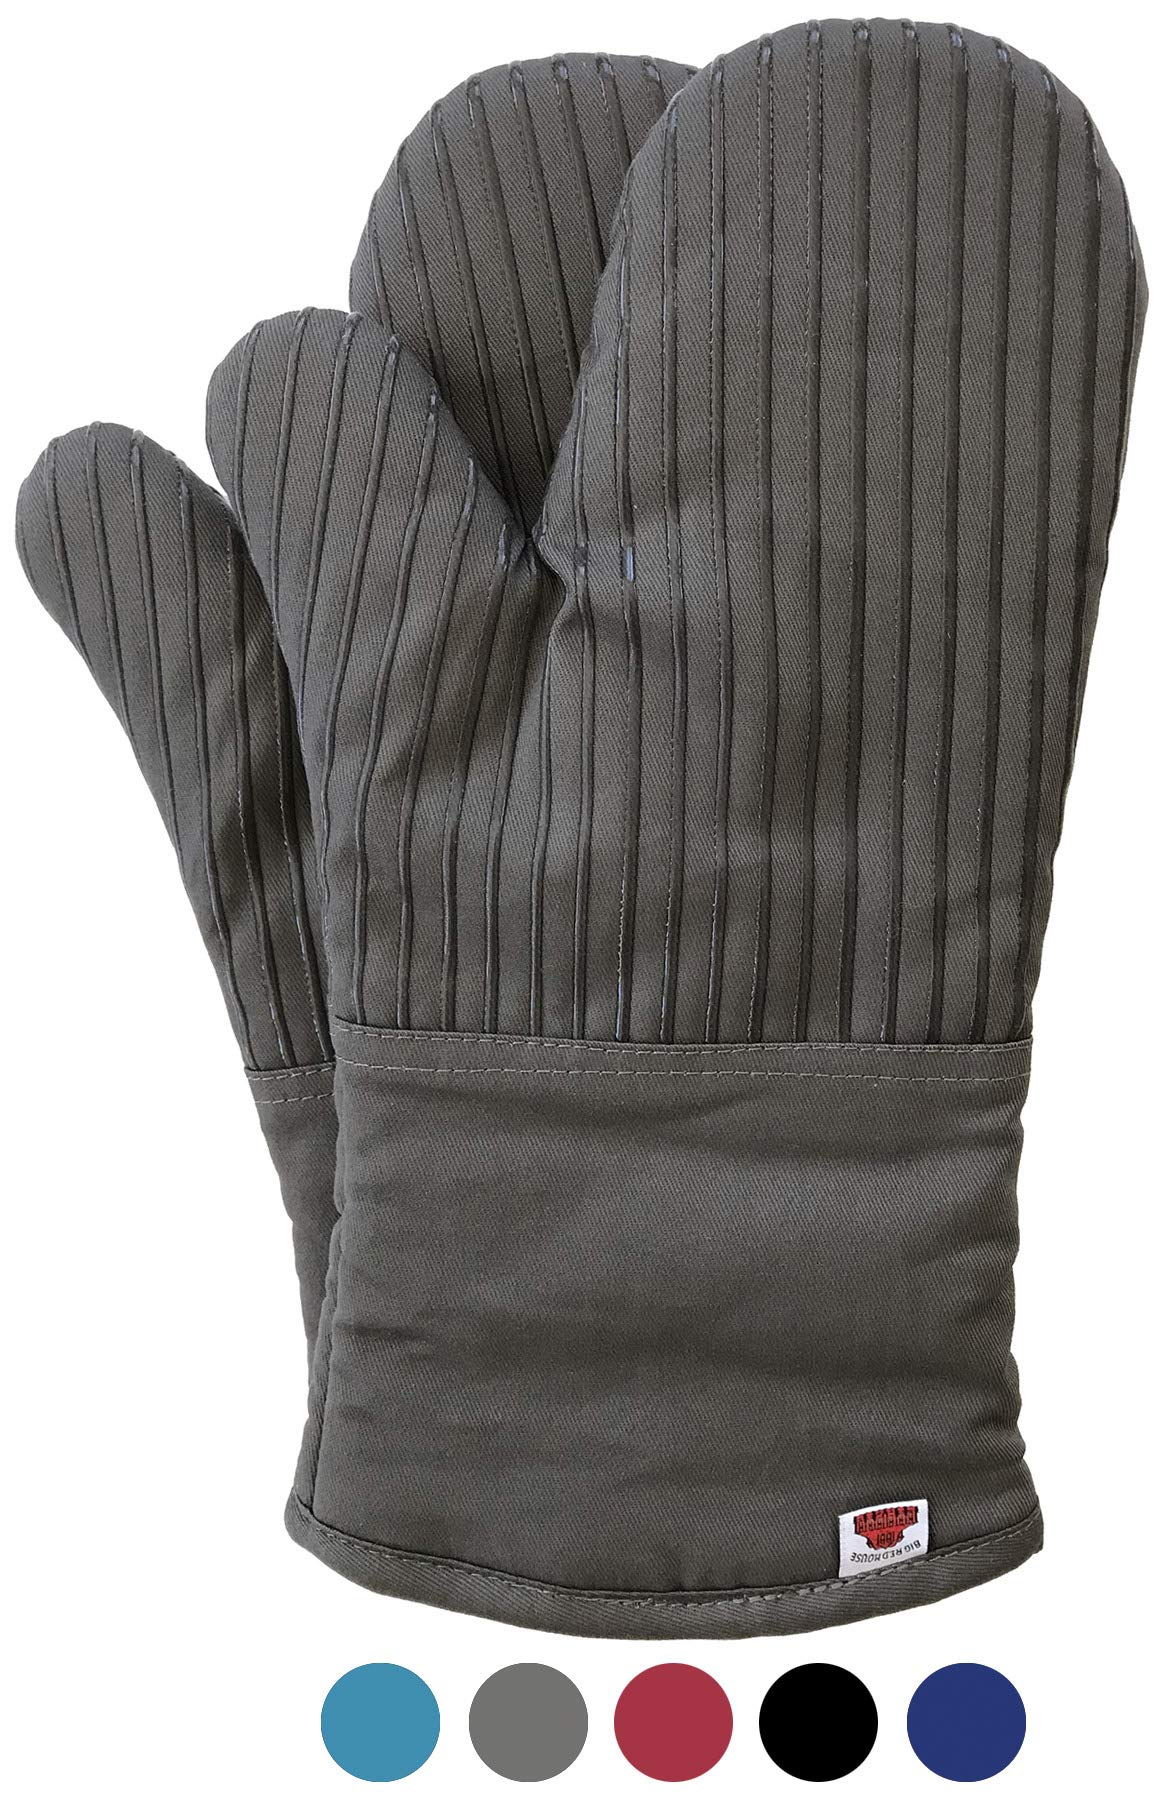 Big Red House Oven Mitts, with The Heat Resistance of Silicone and Flexibility of Cotton, Recycled Cotton Infill, Terrycloth Lining, 480 F Heat Resistant Pair Grey by Big Red House